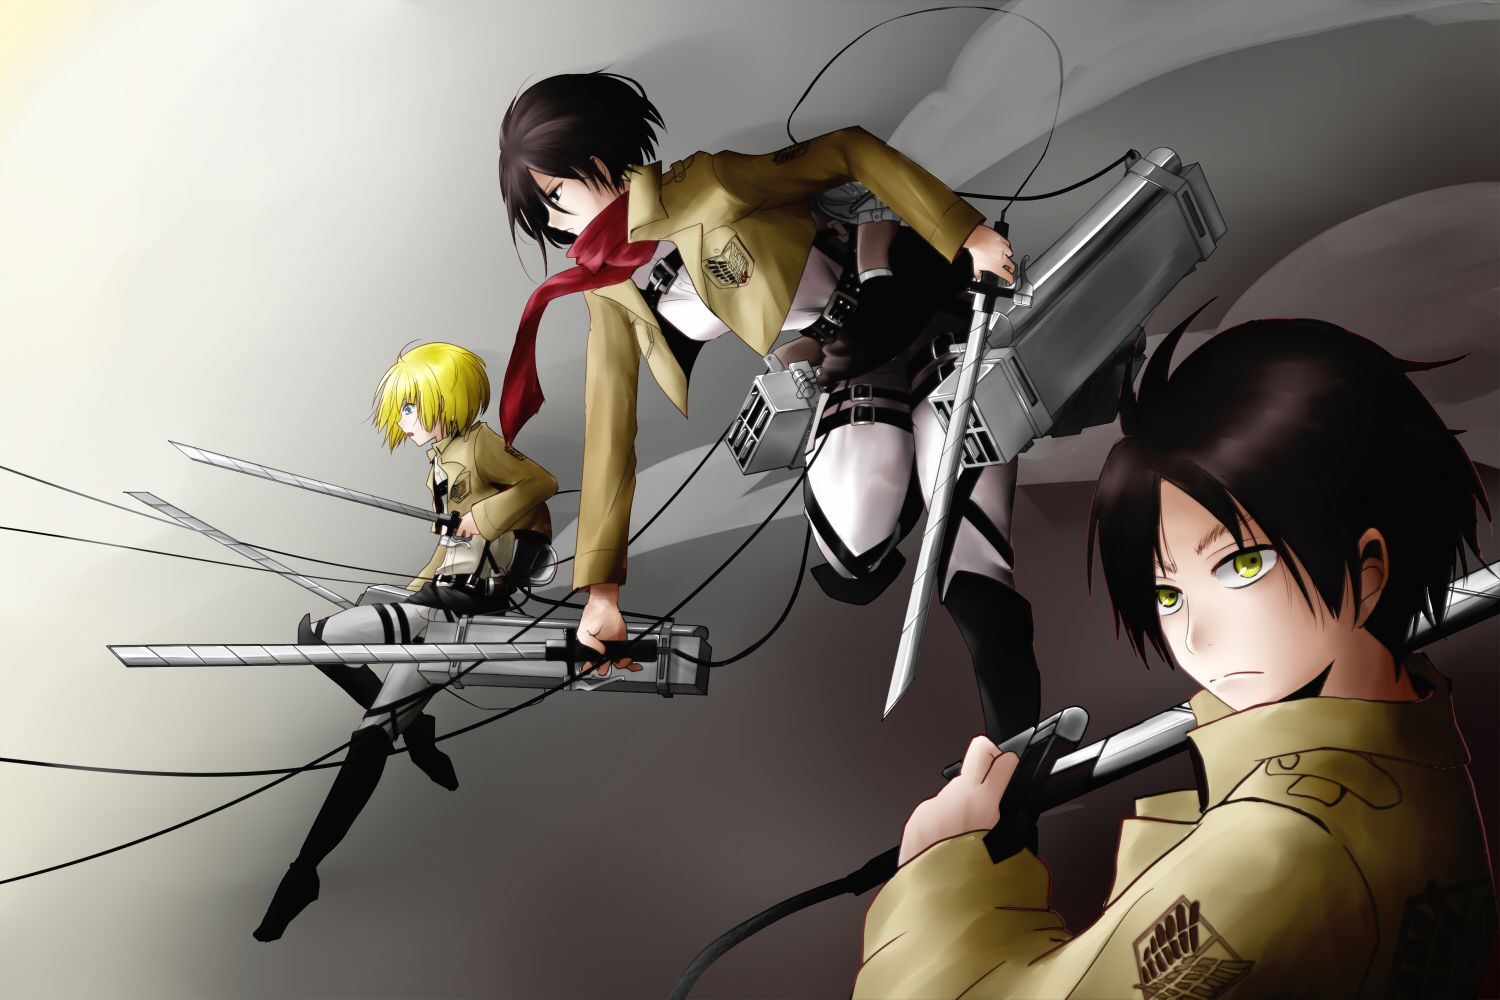 Shingeki no Kyojin by りょーき Anime images, Attack on titan